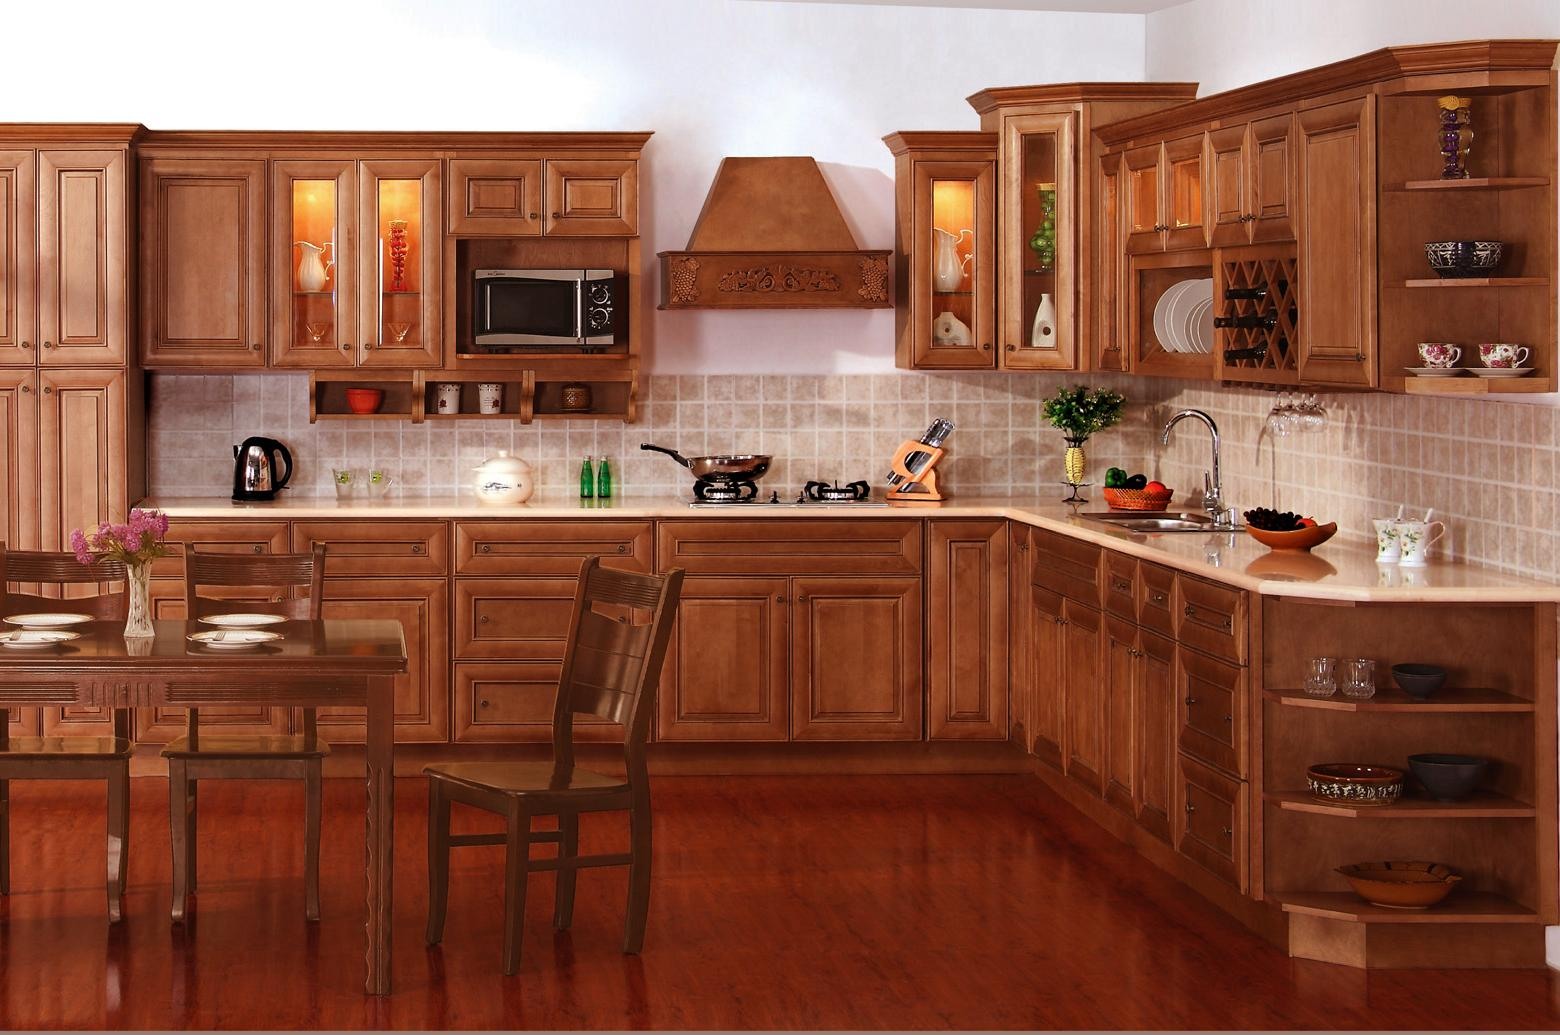 Coffee Color Kitchen Cabinets The Cabinet Spot Coffee Maple Cabinets